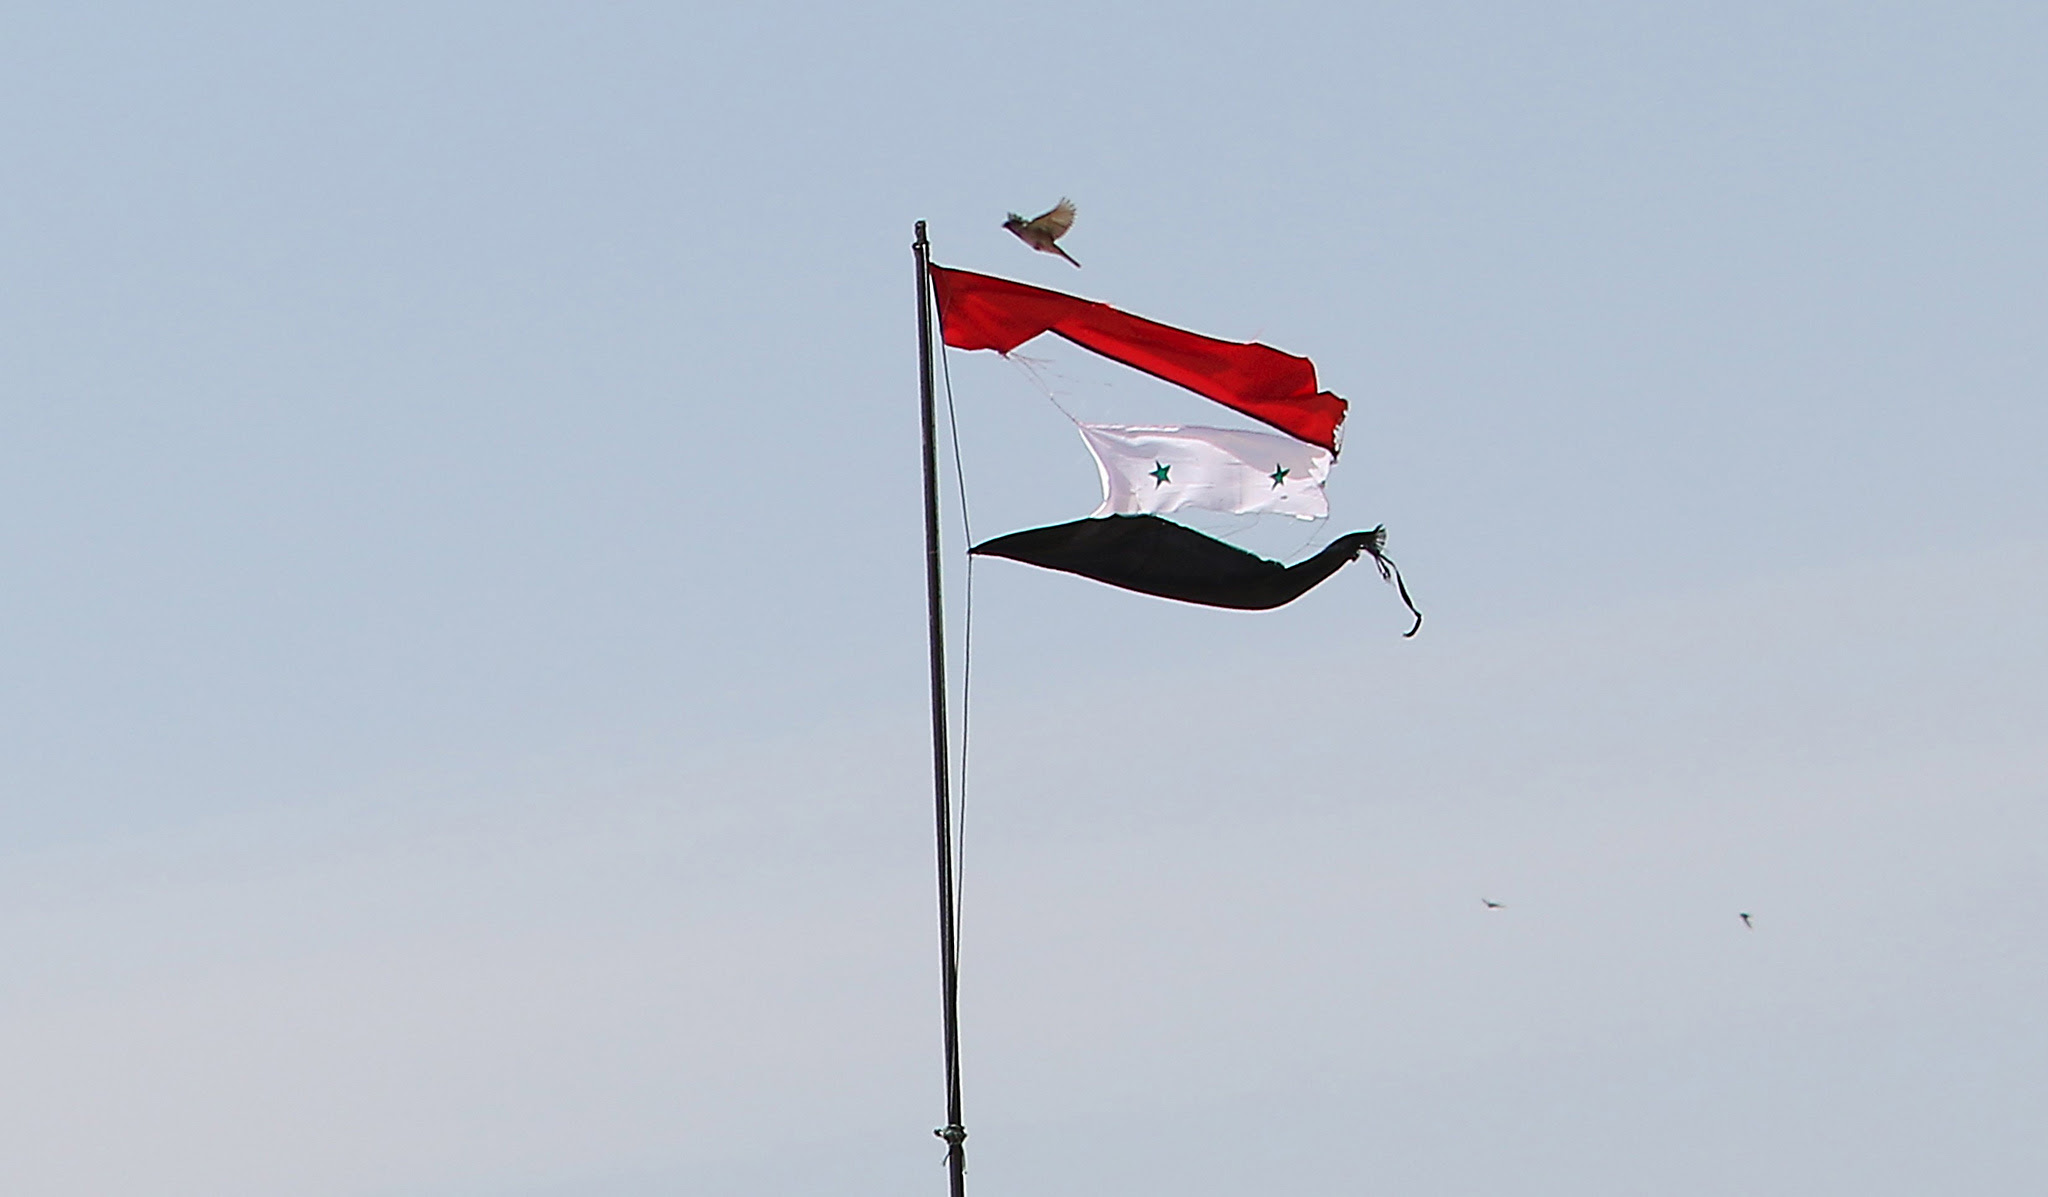 A bird flies near a torn Syrian national flag in the city of Qamishli, Syria April 21,